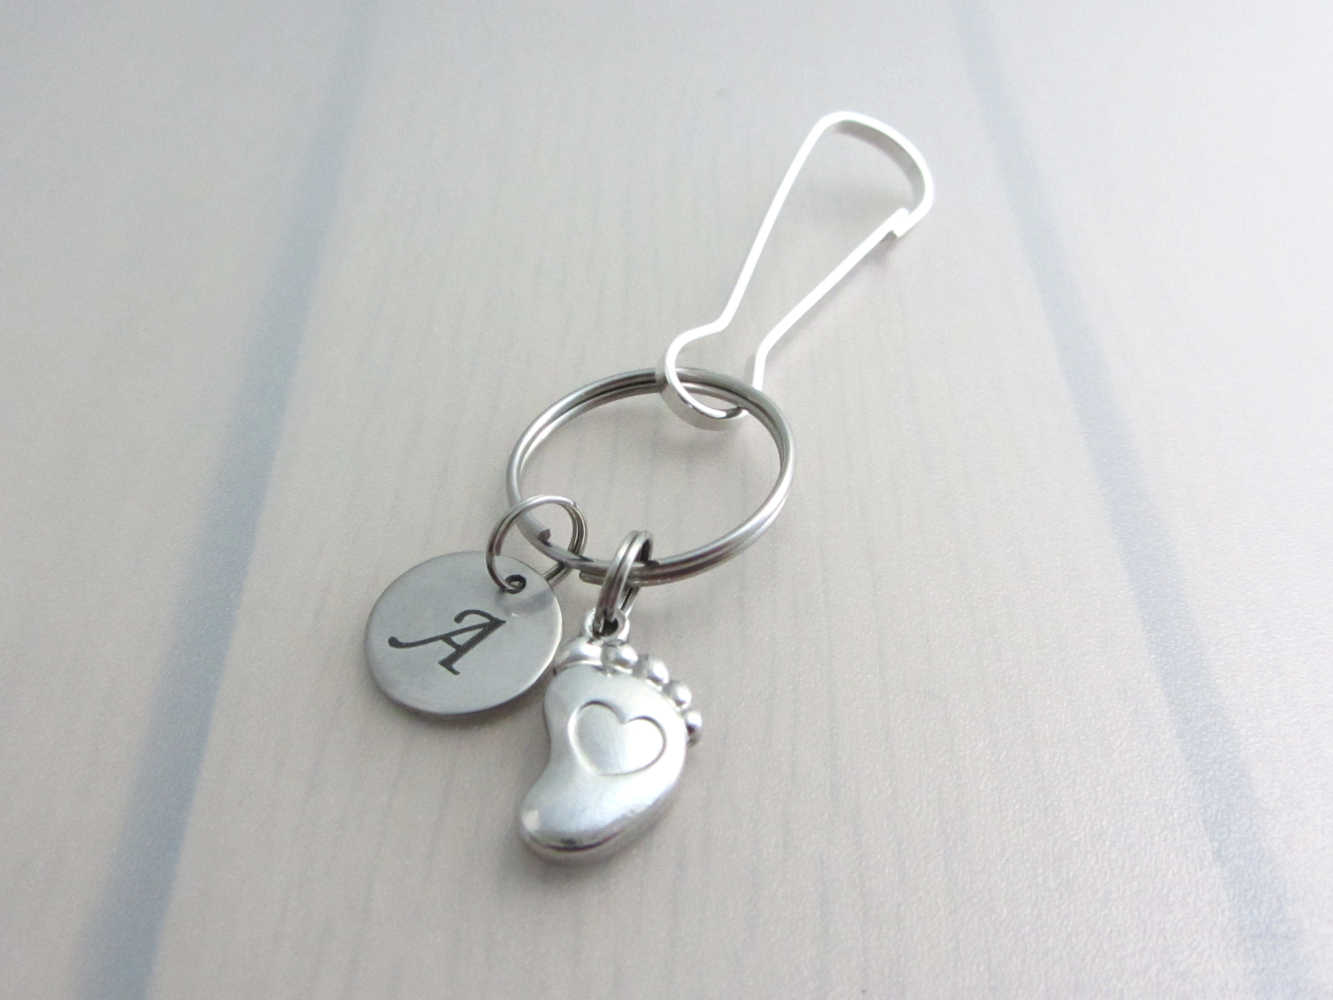 stainless steel laser engraved capital initial letter disc charm and a single foot charm with indented heart on a bag charm with snap clip hook